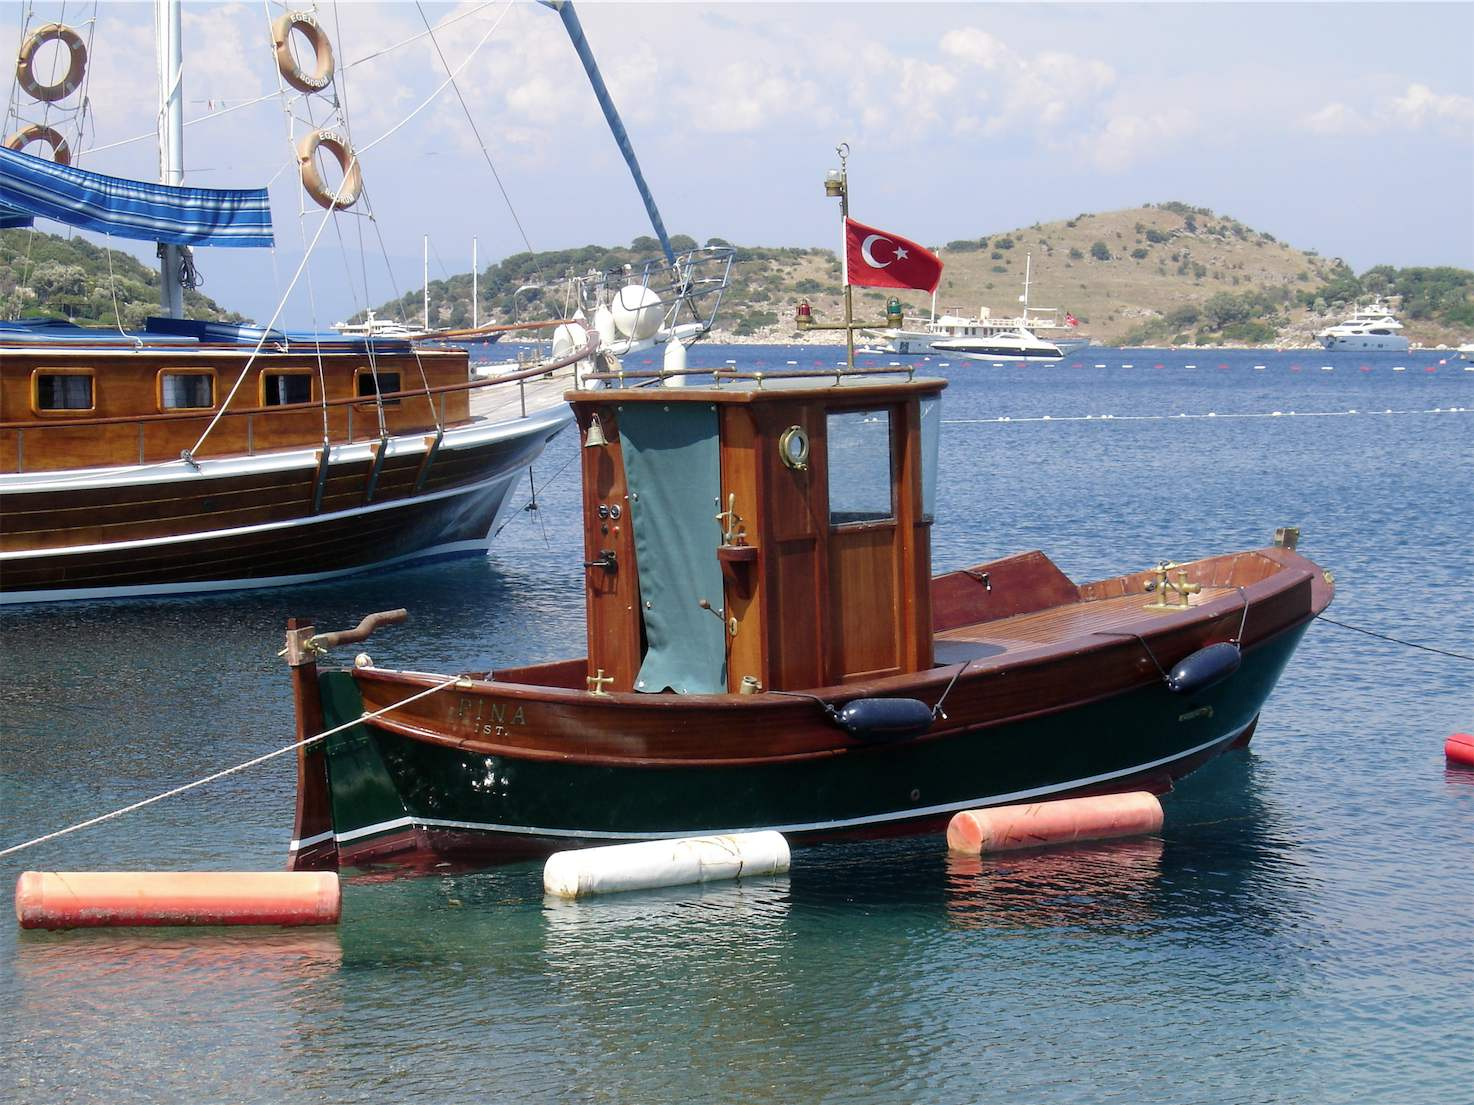 Small fishing boat in turkbuku bodrum travel guide turkey for Best small fishing boat